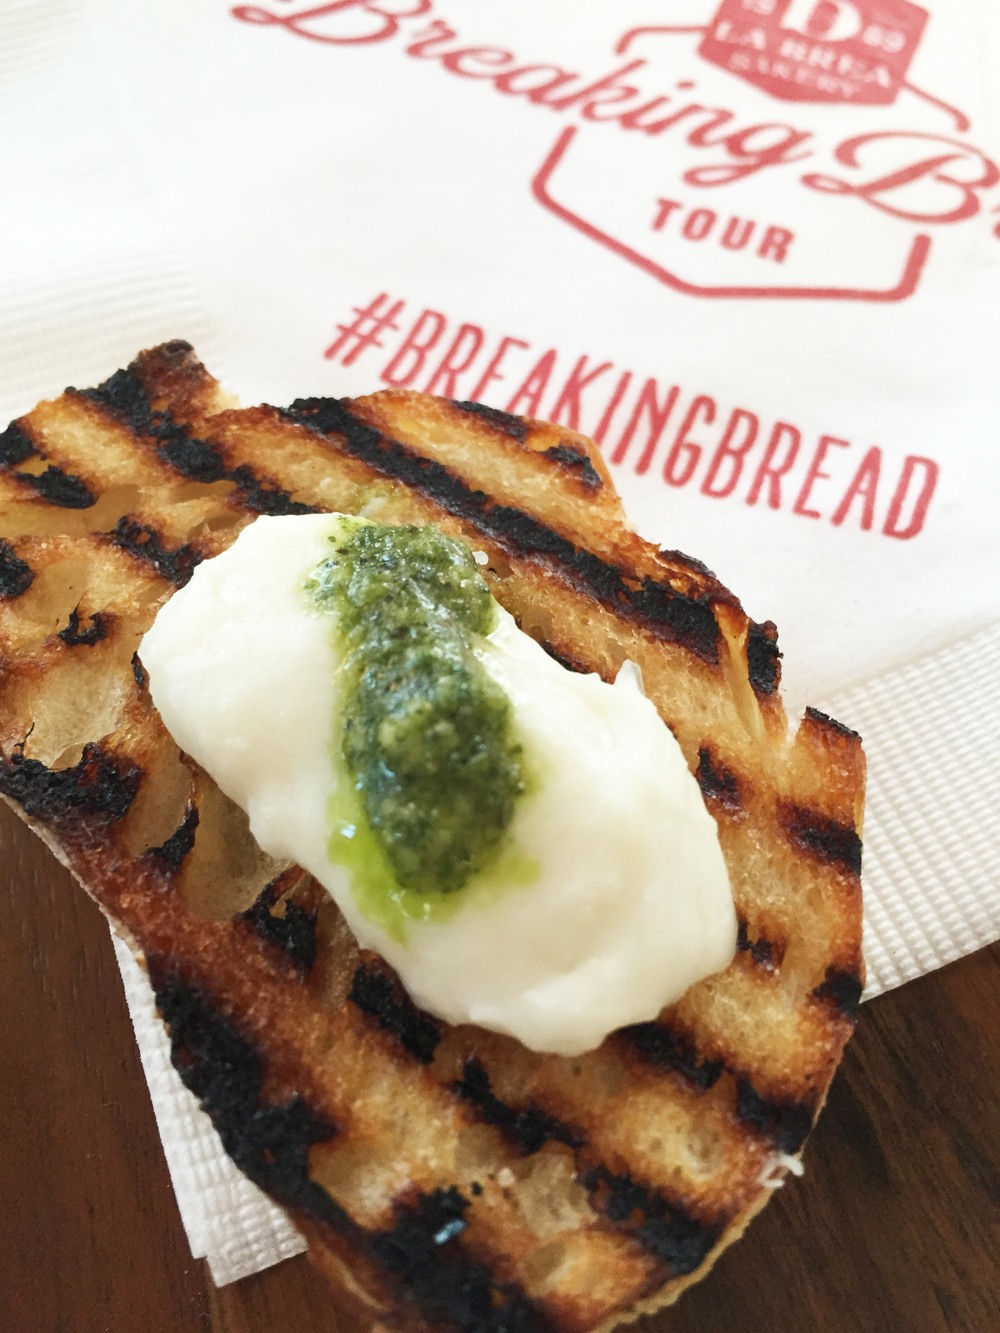 Grilled baguette with burrata and pesto.